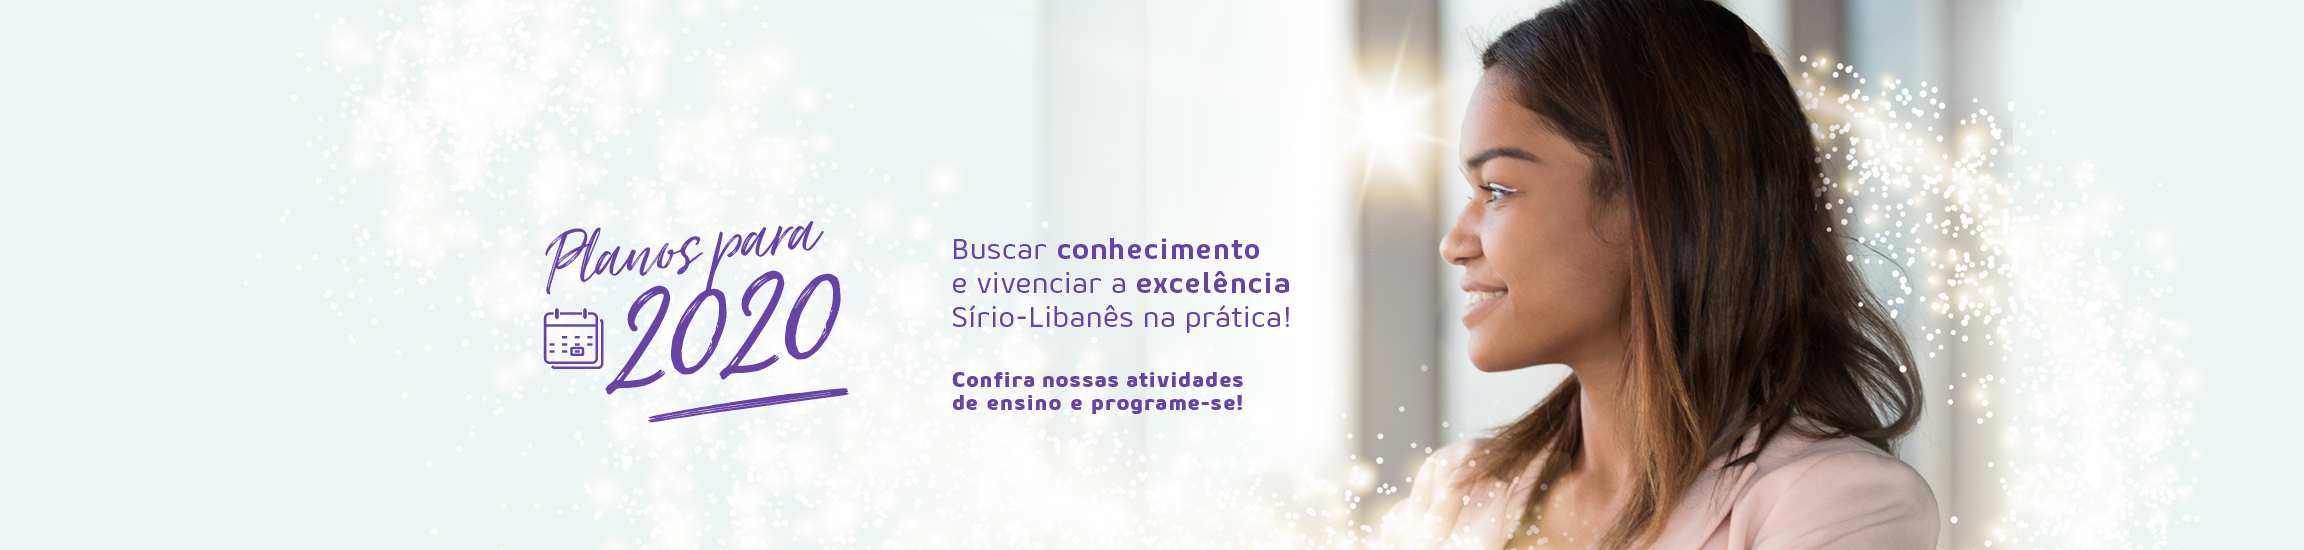 https://iep.hospitalsiriolibanes.org.br/PublishingImages/Banner%20-%20Rotativo/Cursos%202018/Banner-FimDeAno-IEP-2304x550px%202.png